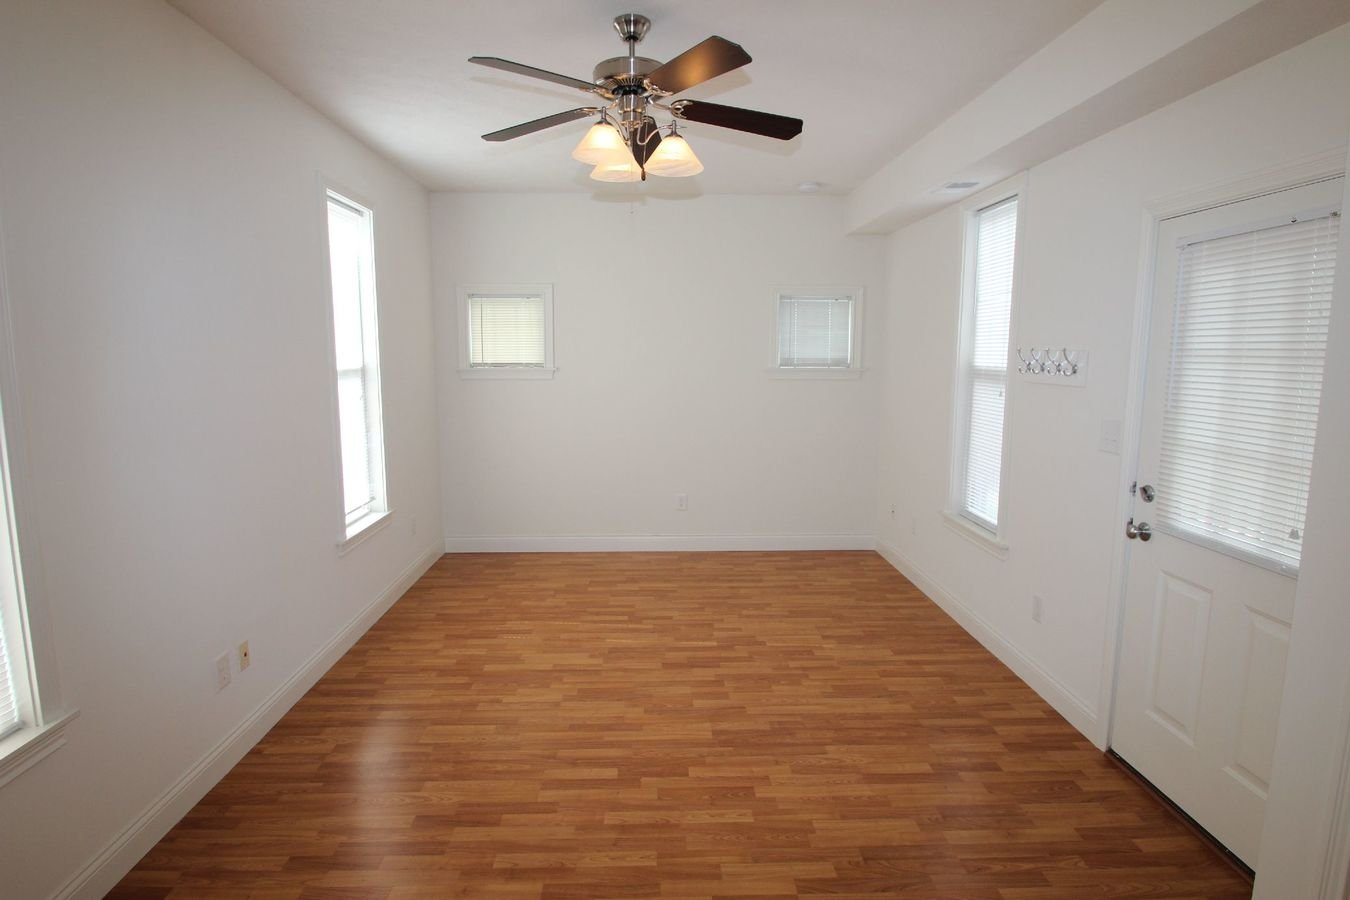 1 Bedroom 1 Bathroom Apartment for rent at Covenanter Hill Neighborhood District in Bloomington, IN